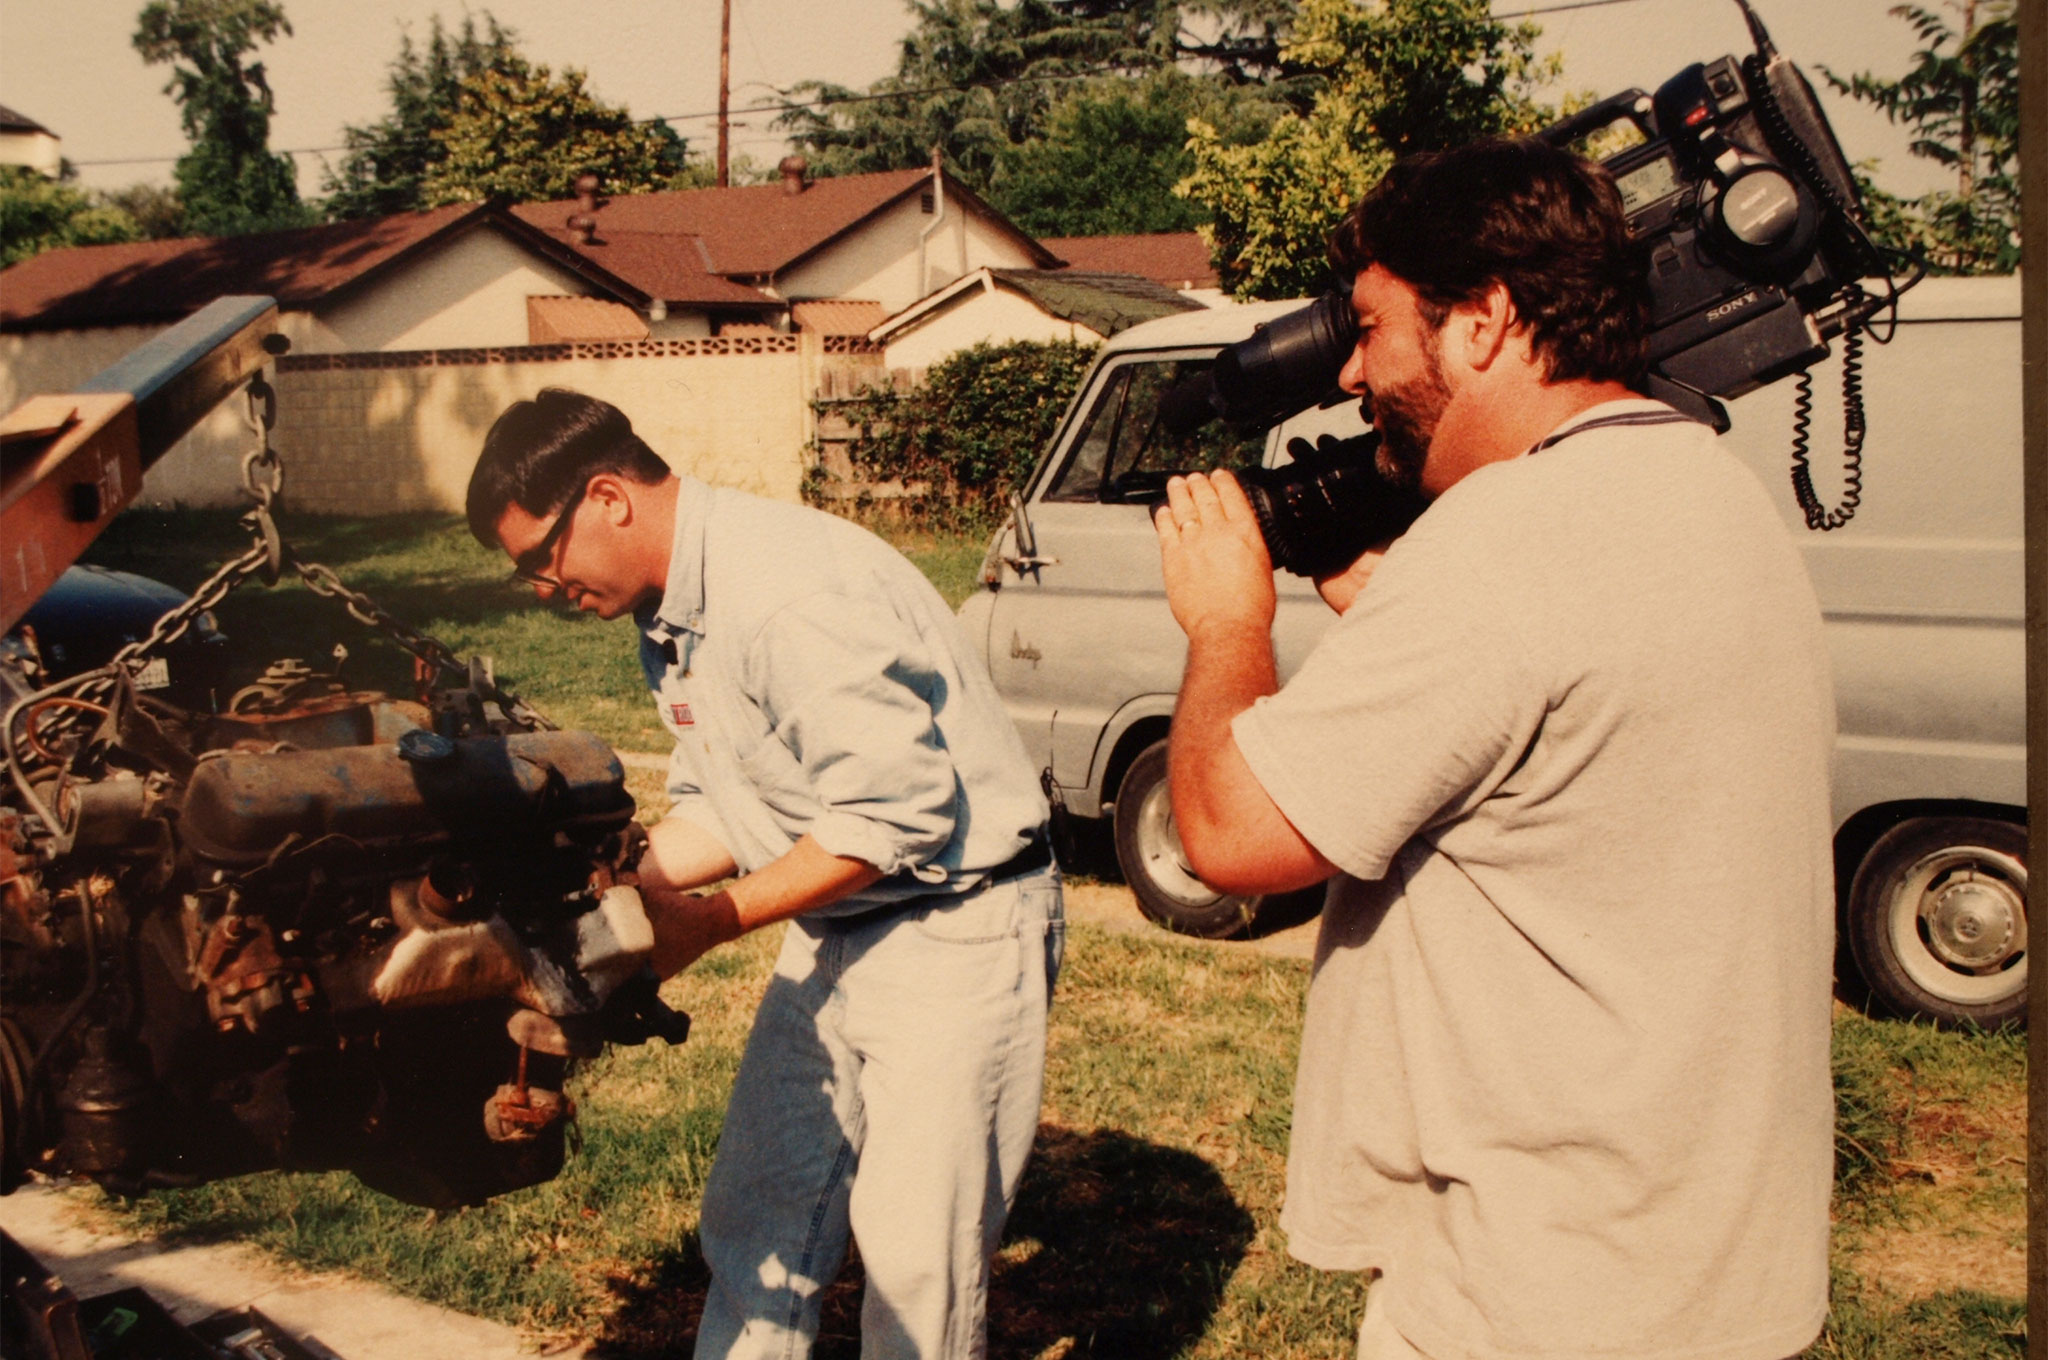 We shot a bunch of episodes of HRTV using the Hell Shack as a base of operations. Here, I'm about to tear down a junkyard-score Pontiac 455 for the camera. The engine belonged to my former HRM coworker Terry McGean, and he really did find the 7.4L treasure at Pick-A-Part! The cameraman was a freelancer named Jim, who was a veteran of numerous episodes of Cops. He always had wild stories to tell about close calls with criminals and high-speed pursuits. This shot was taken around 1998 (the covered carport hadn't been built yet). I paid $550 for the 1965 Dodge A100 van in the background. You could score them all day long for less than a grand back then.